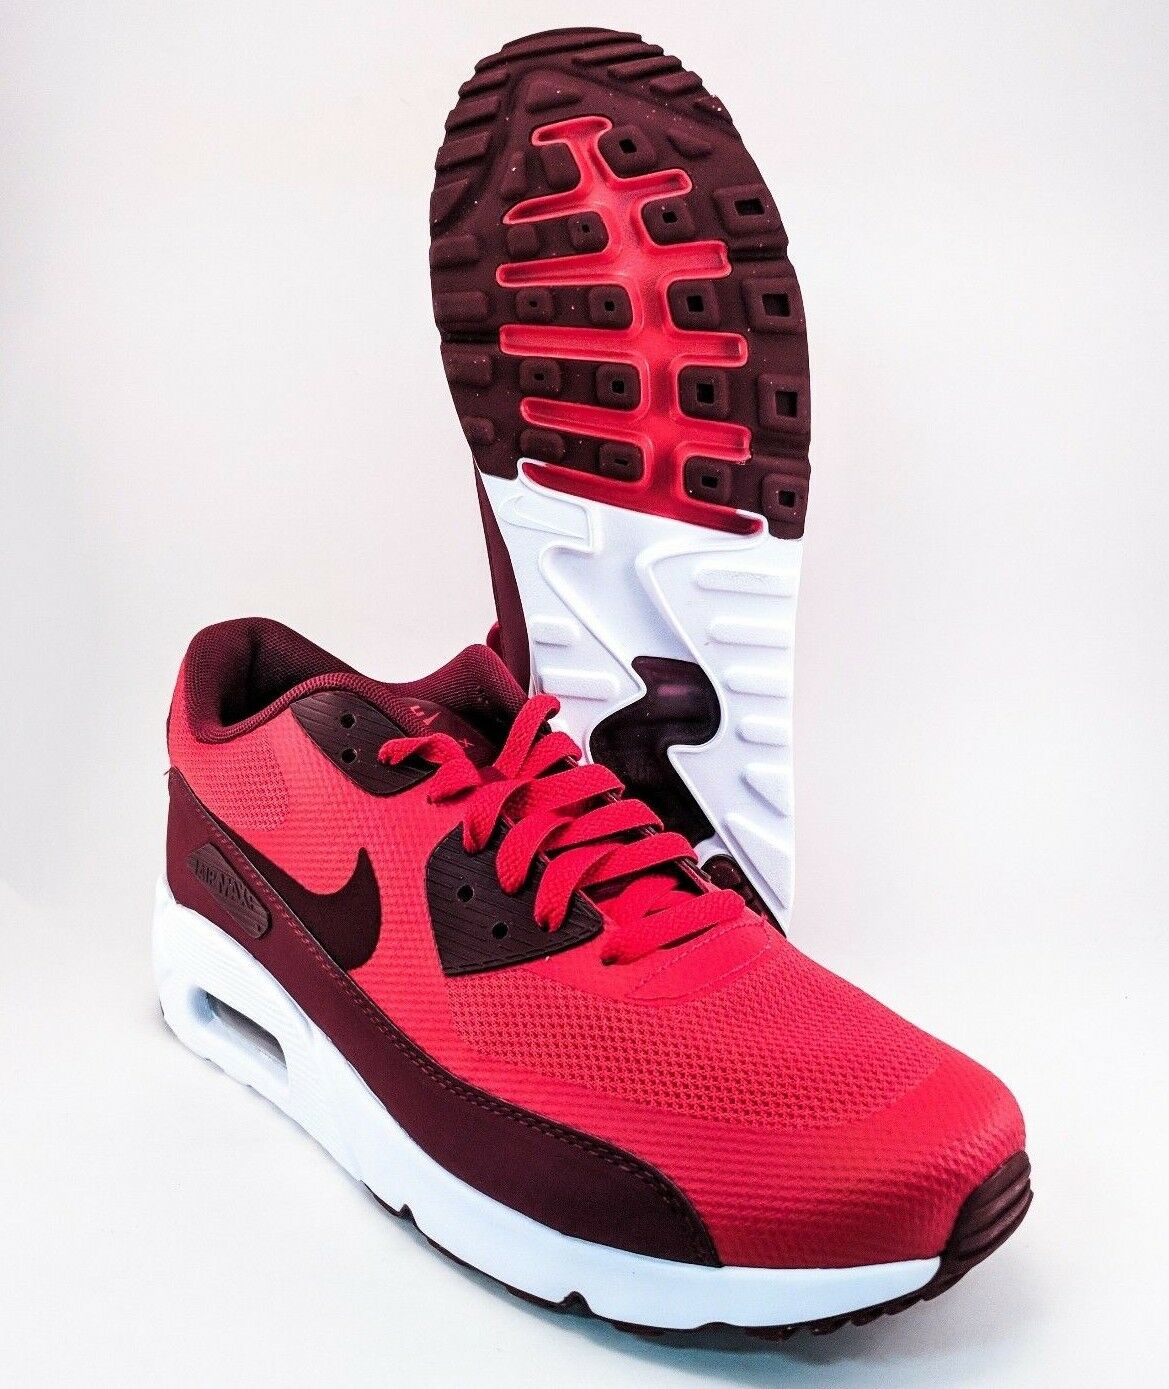 Seasonal clearance sale Nike Air Max 90 Ultra 2.0 Essential Running Mens Comfortable